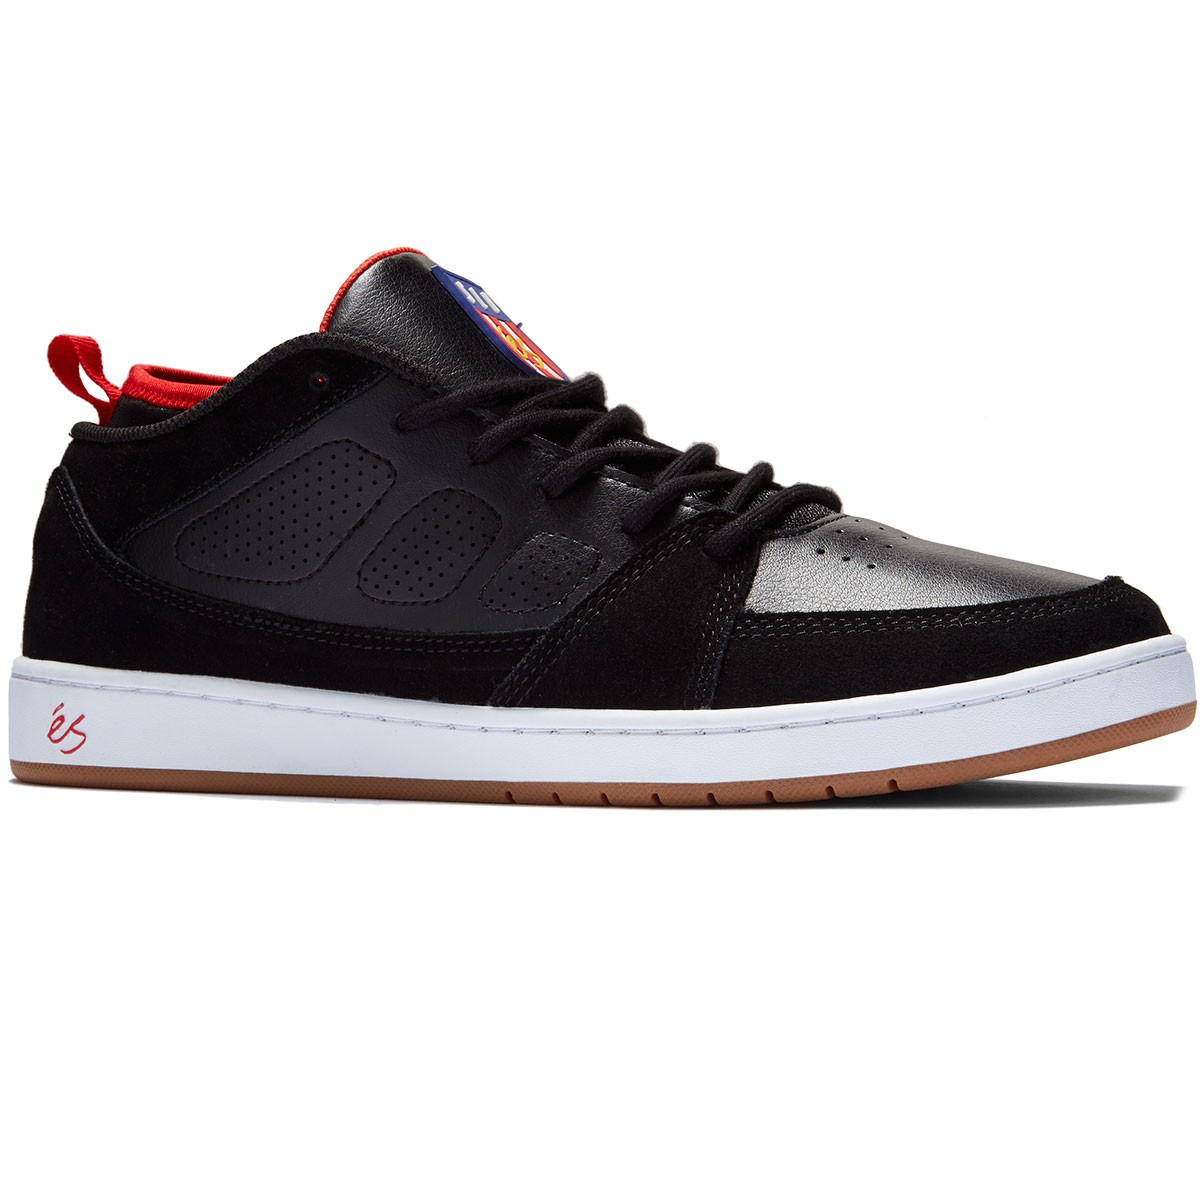 eS Shoes SLB MID Black FREE POST New Skateboard Sneakers